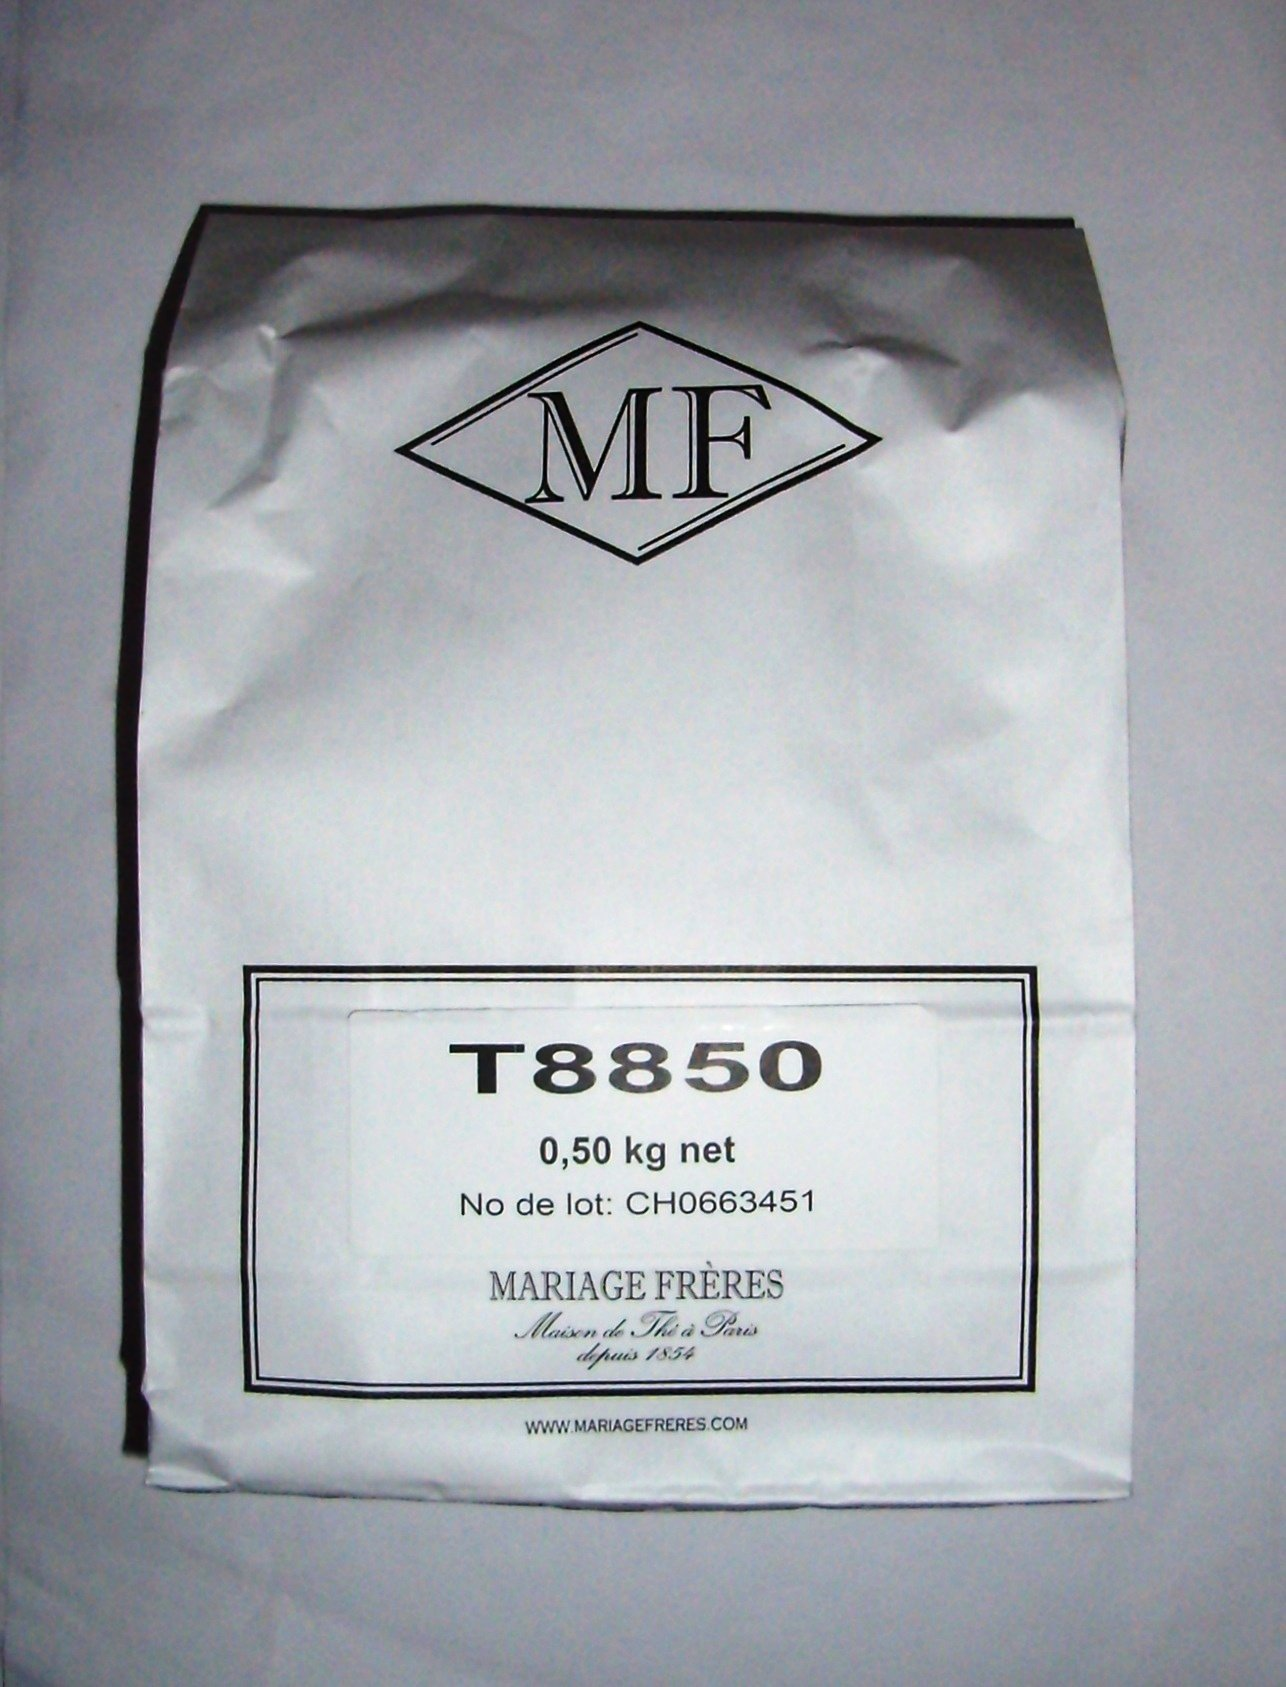 Mariage Frères - THÉ BLANC MARCO POLO (White tea) NEW! - LOOSE LEAF BAG - 17.63oz / 500gr